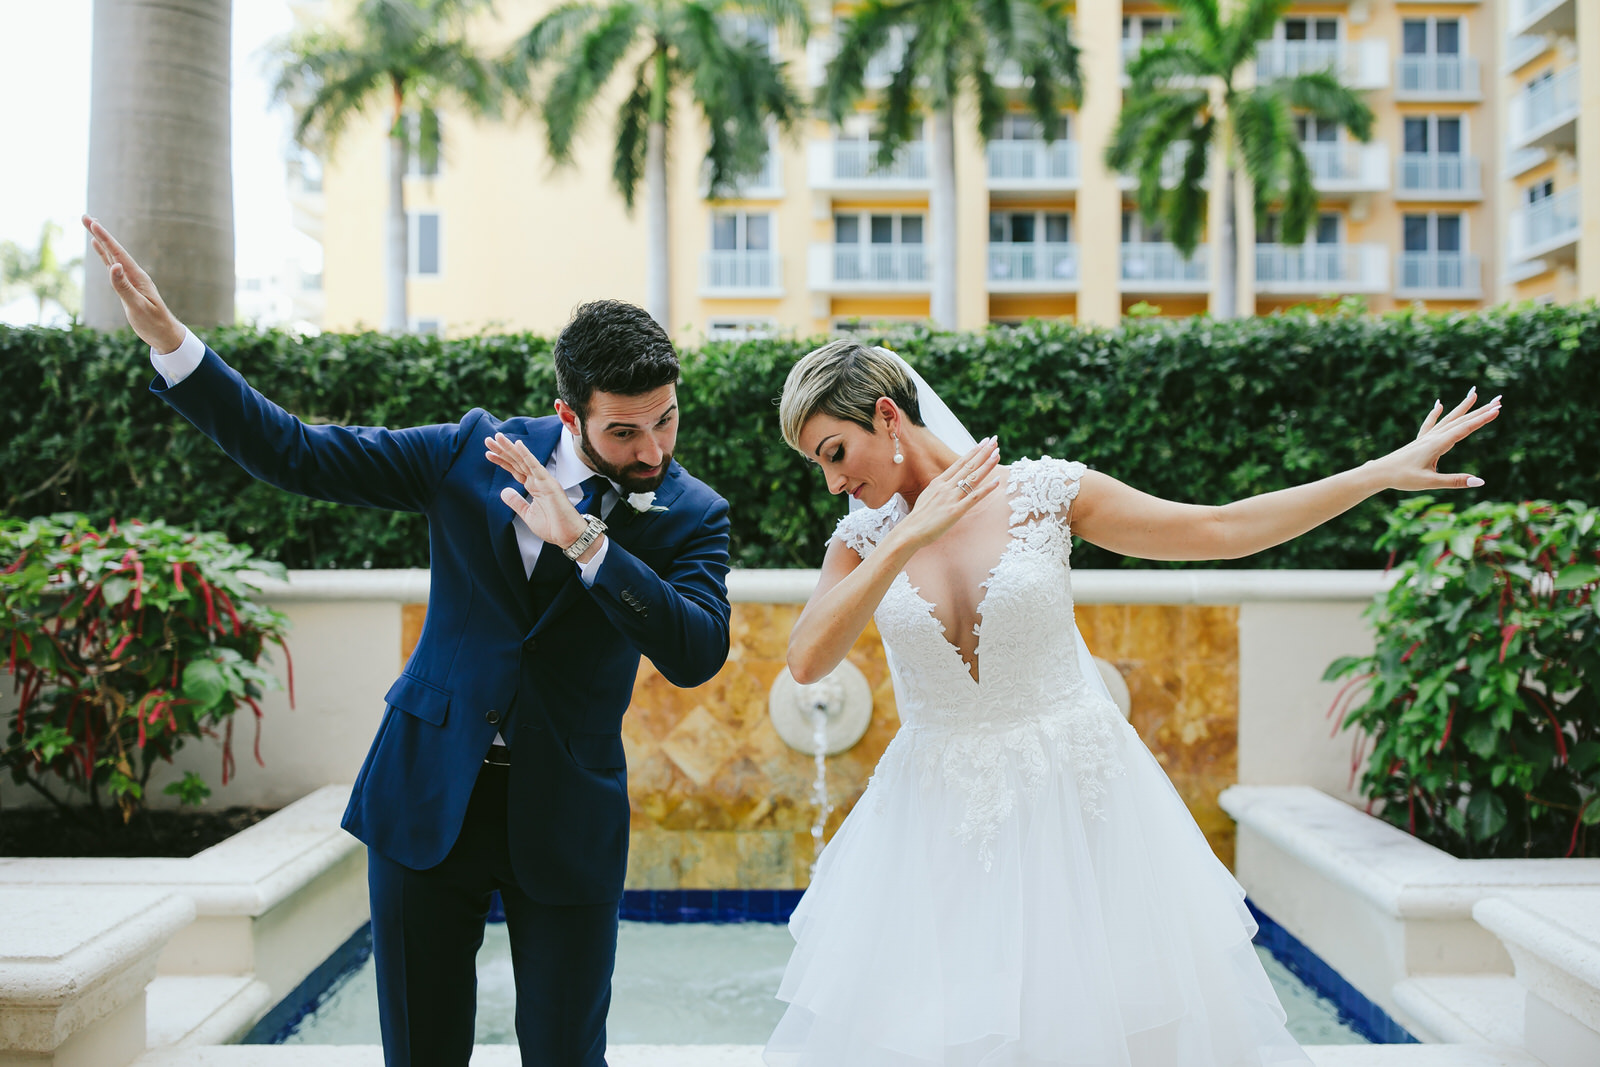 first-look-bride-groom-portraits-candids-tiny-house-photo-key-biscayne-ritz-carlton.jpg